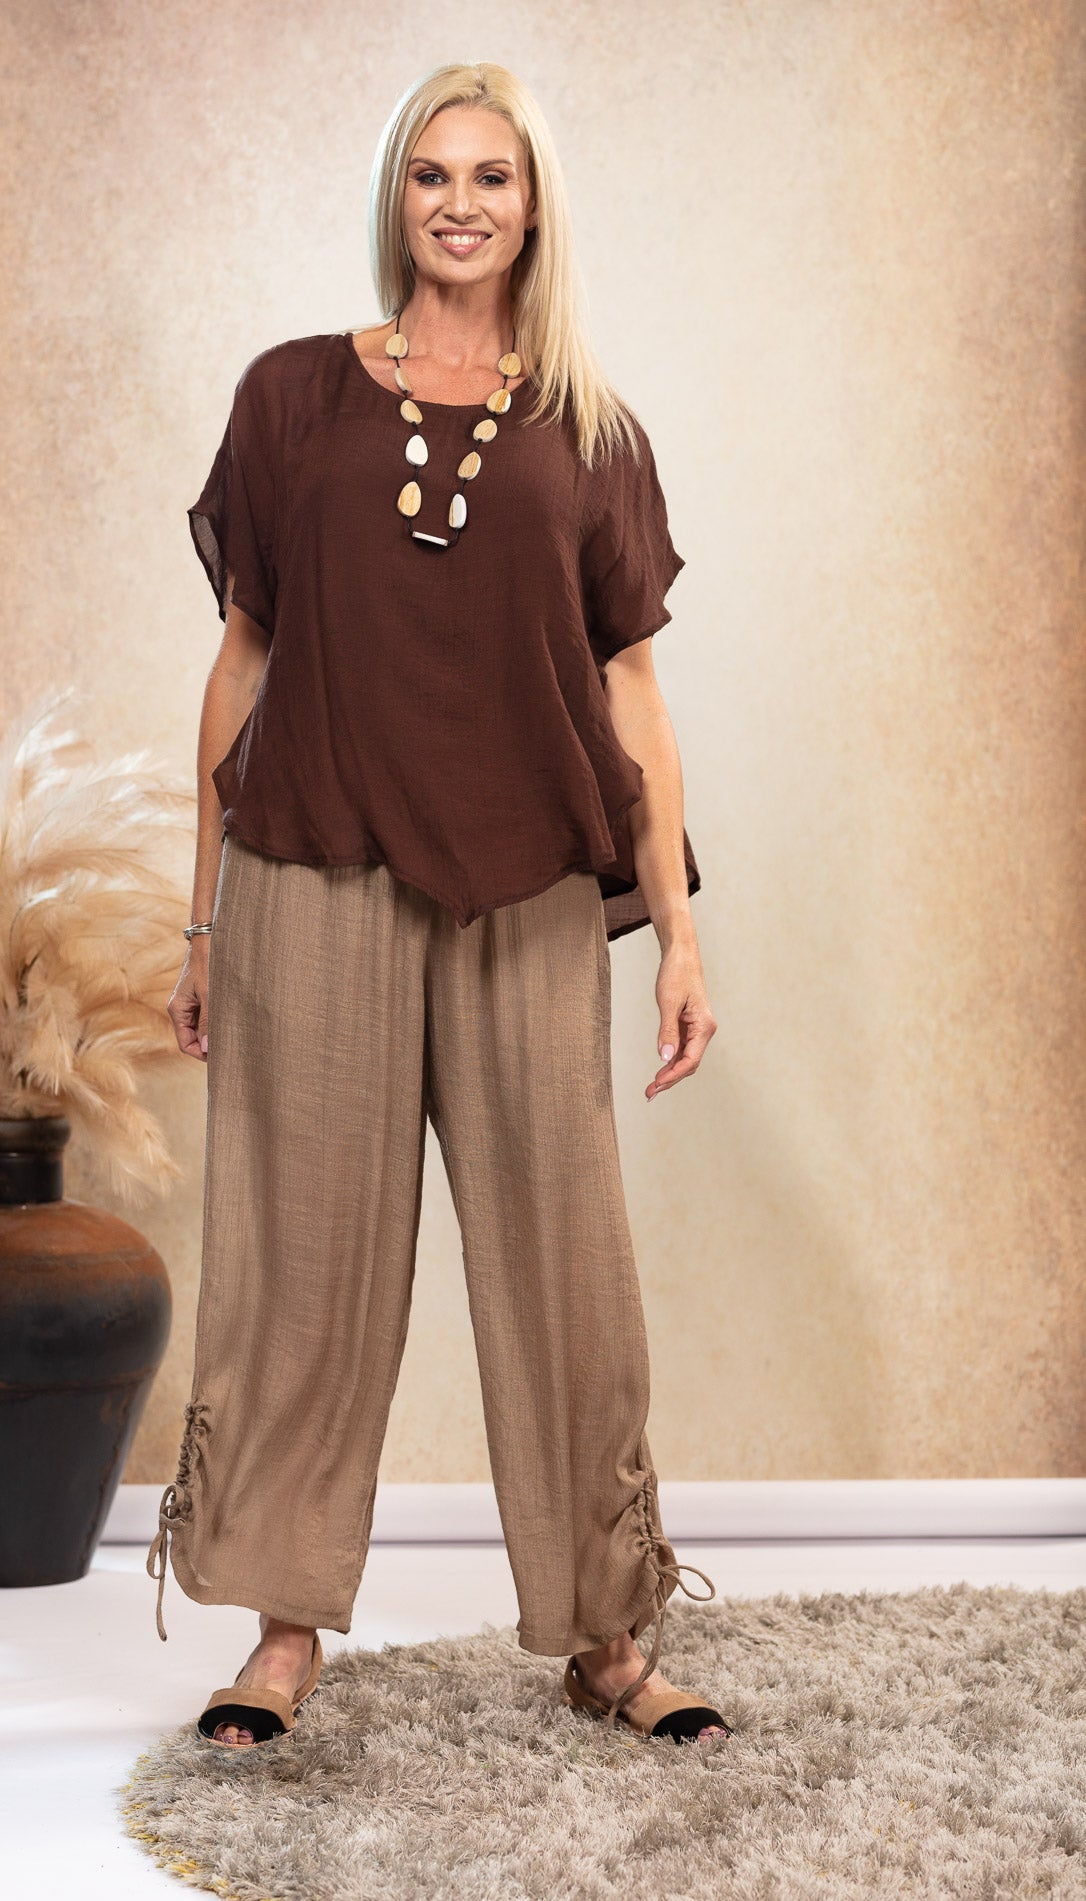 Bamboo Top in Chocolate Brown colour. Bamboo top with sleeve. Beige natural coloured pants. Long Bamboo Pants. Harem Pants. Black and taupe sandals. Black and tan Avarca sandals.